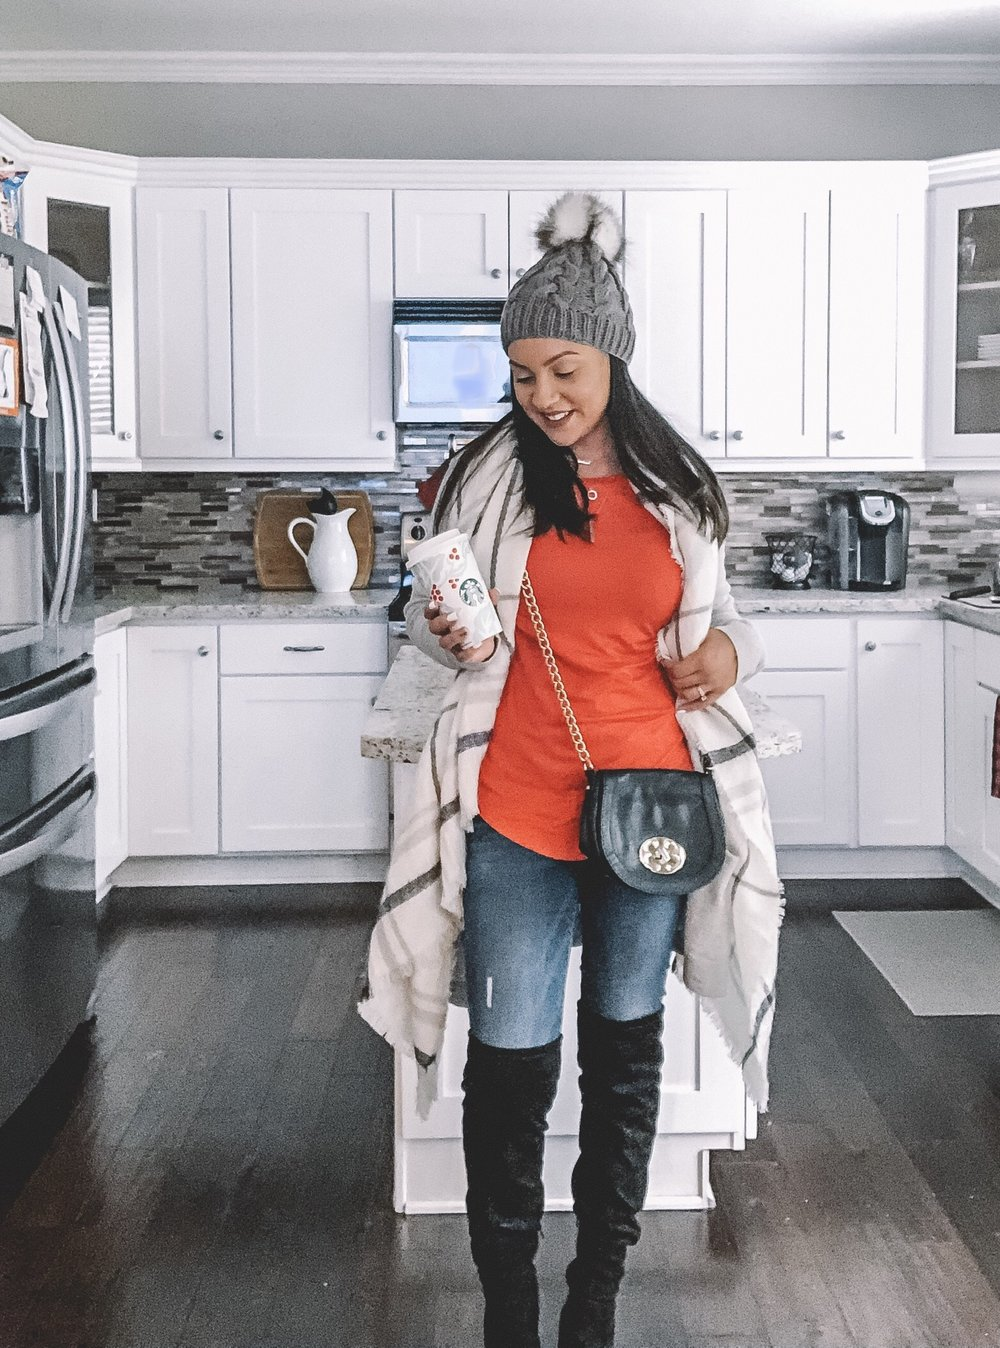 """I can't forget a long cardigan and cross body bag. They're a quick """"throw on"""" addition to any outfit but also add some style. Pair with a dress or jeans, boots or booties and you've got yourself an outfit sure to get you some compliments."""